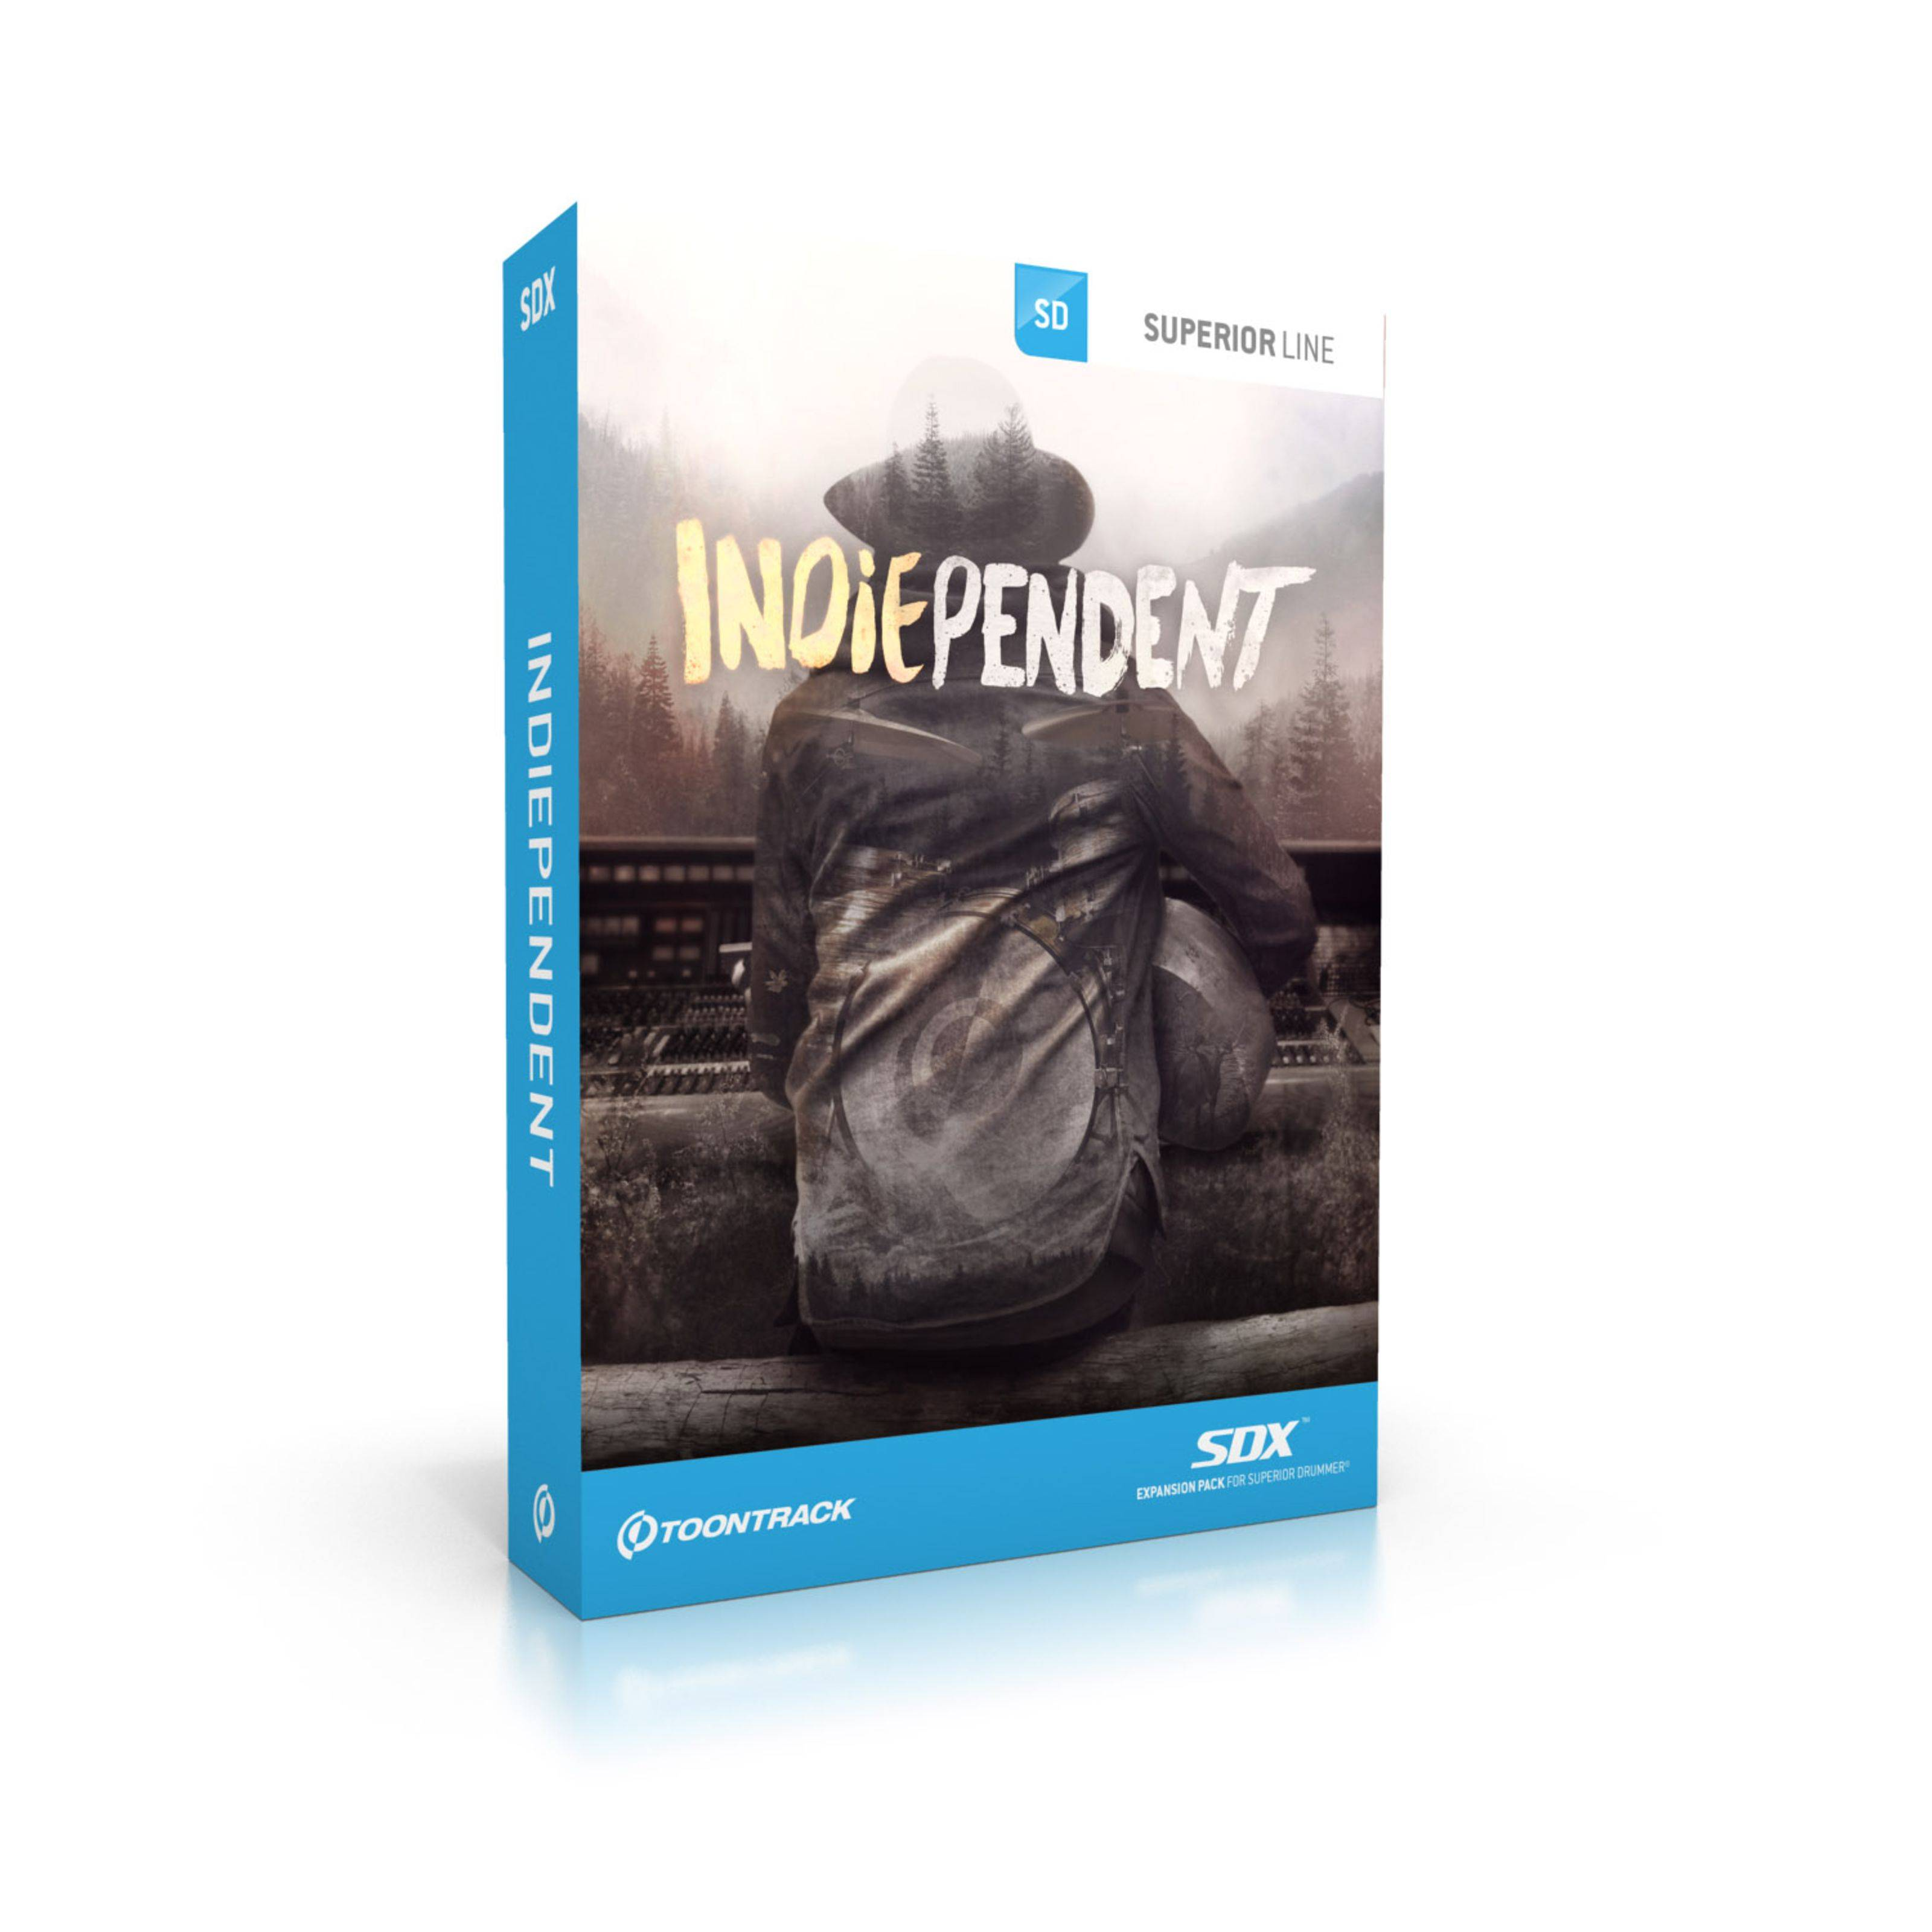 Toontrack SDX Indiependent Superior Drummer 2 Library